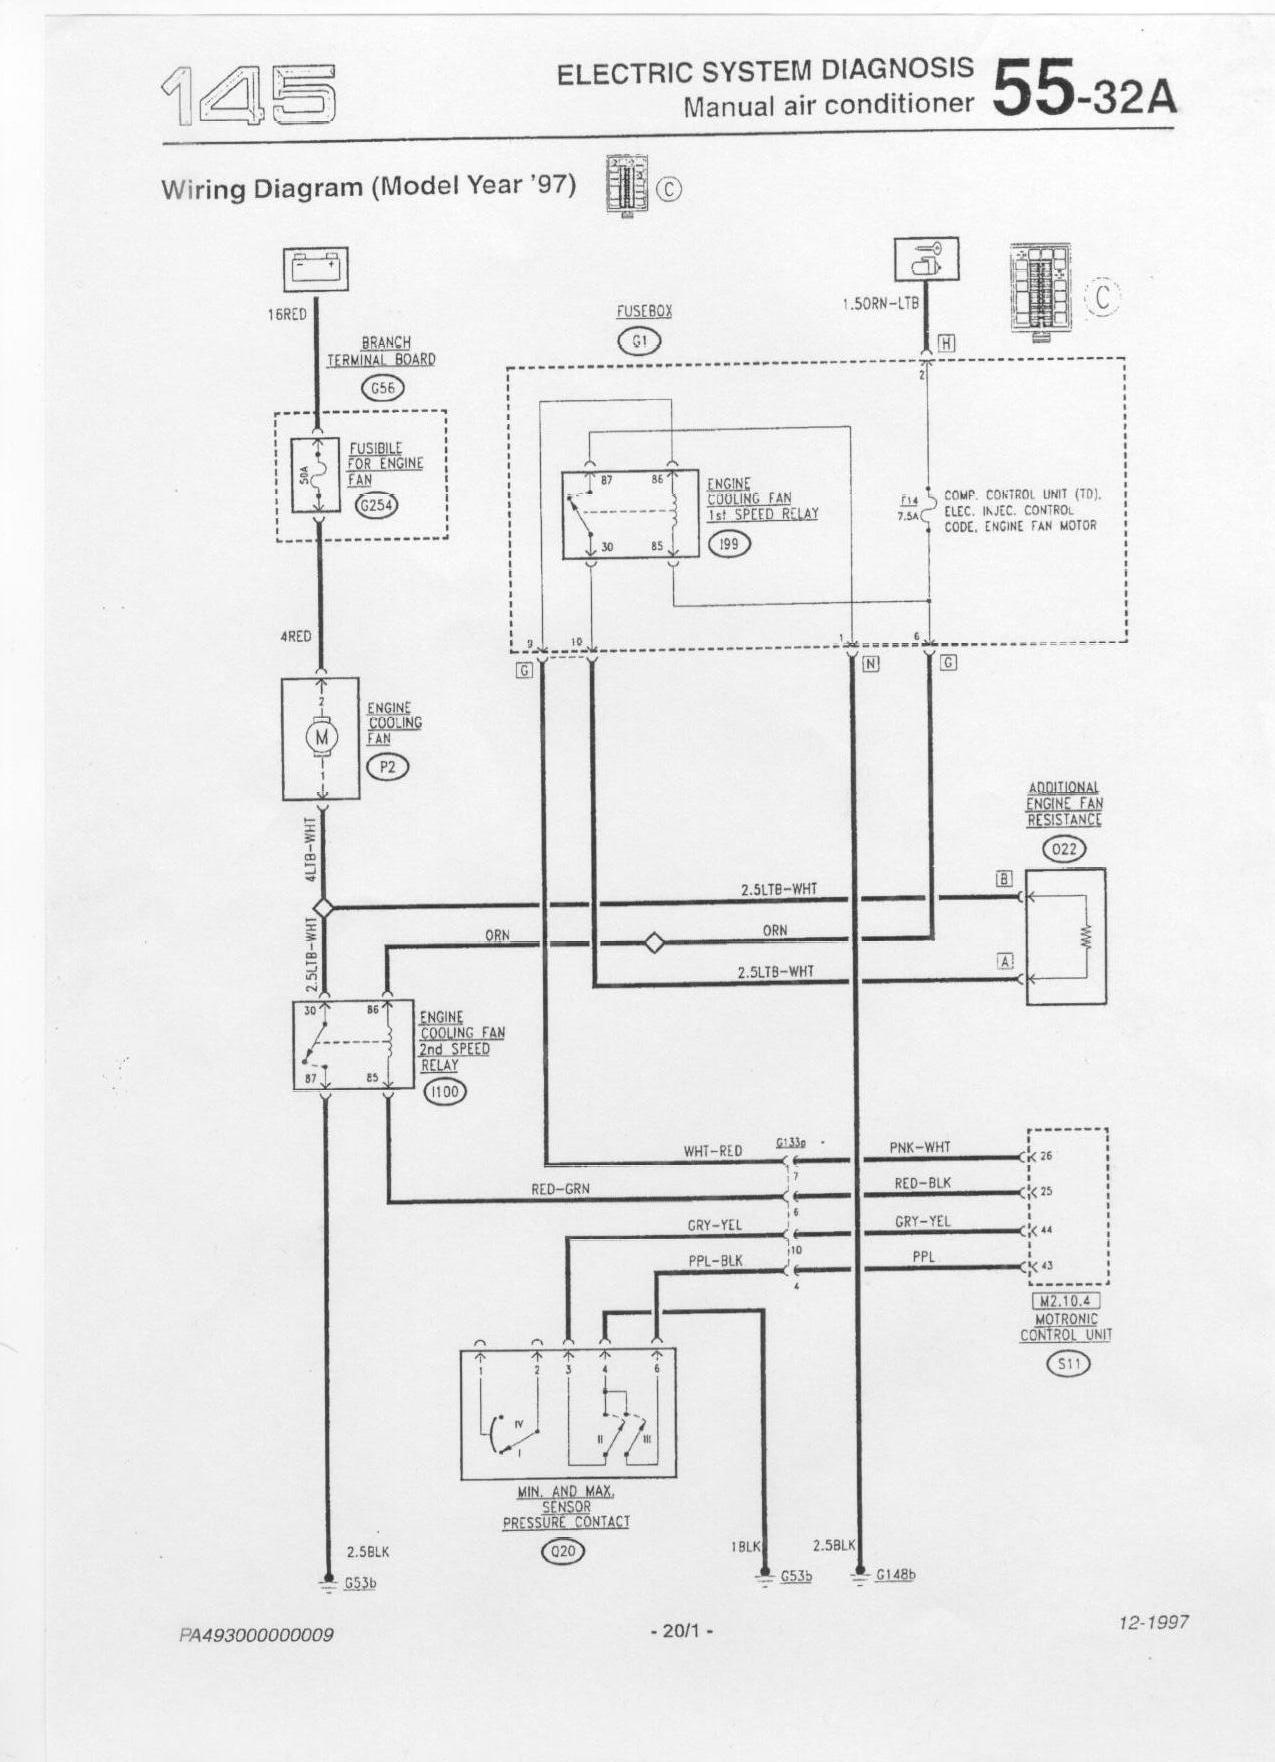 Alfa Romeo 145 Wiring Diagram Library Gt Rad Fan Not Grafting 146 Forum Attached Image 916